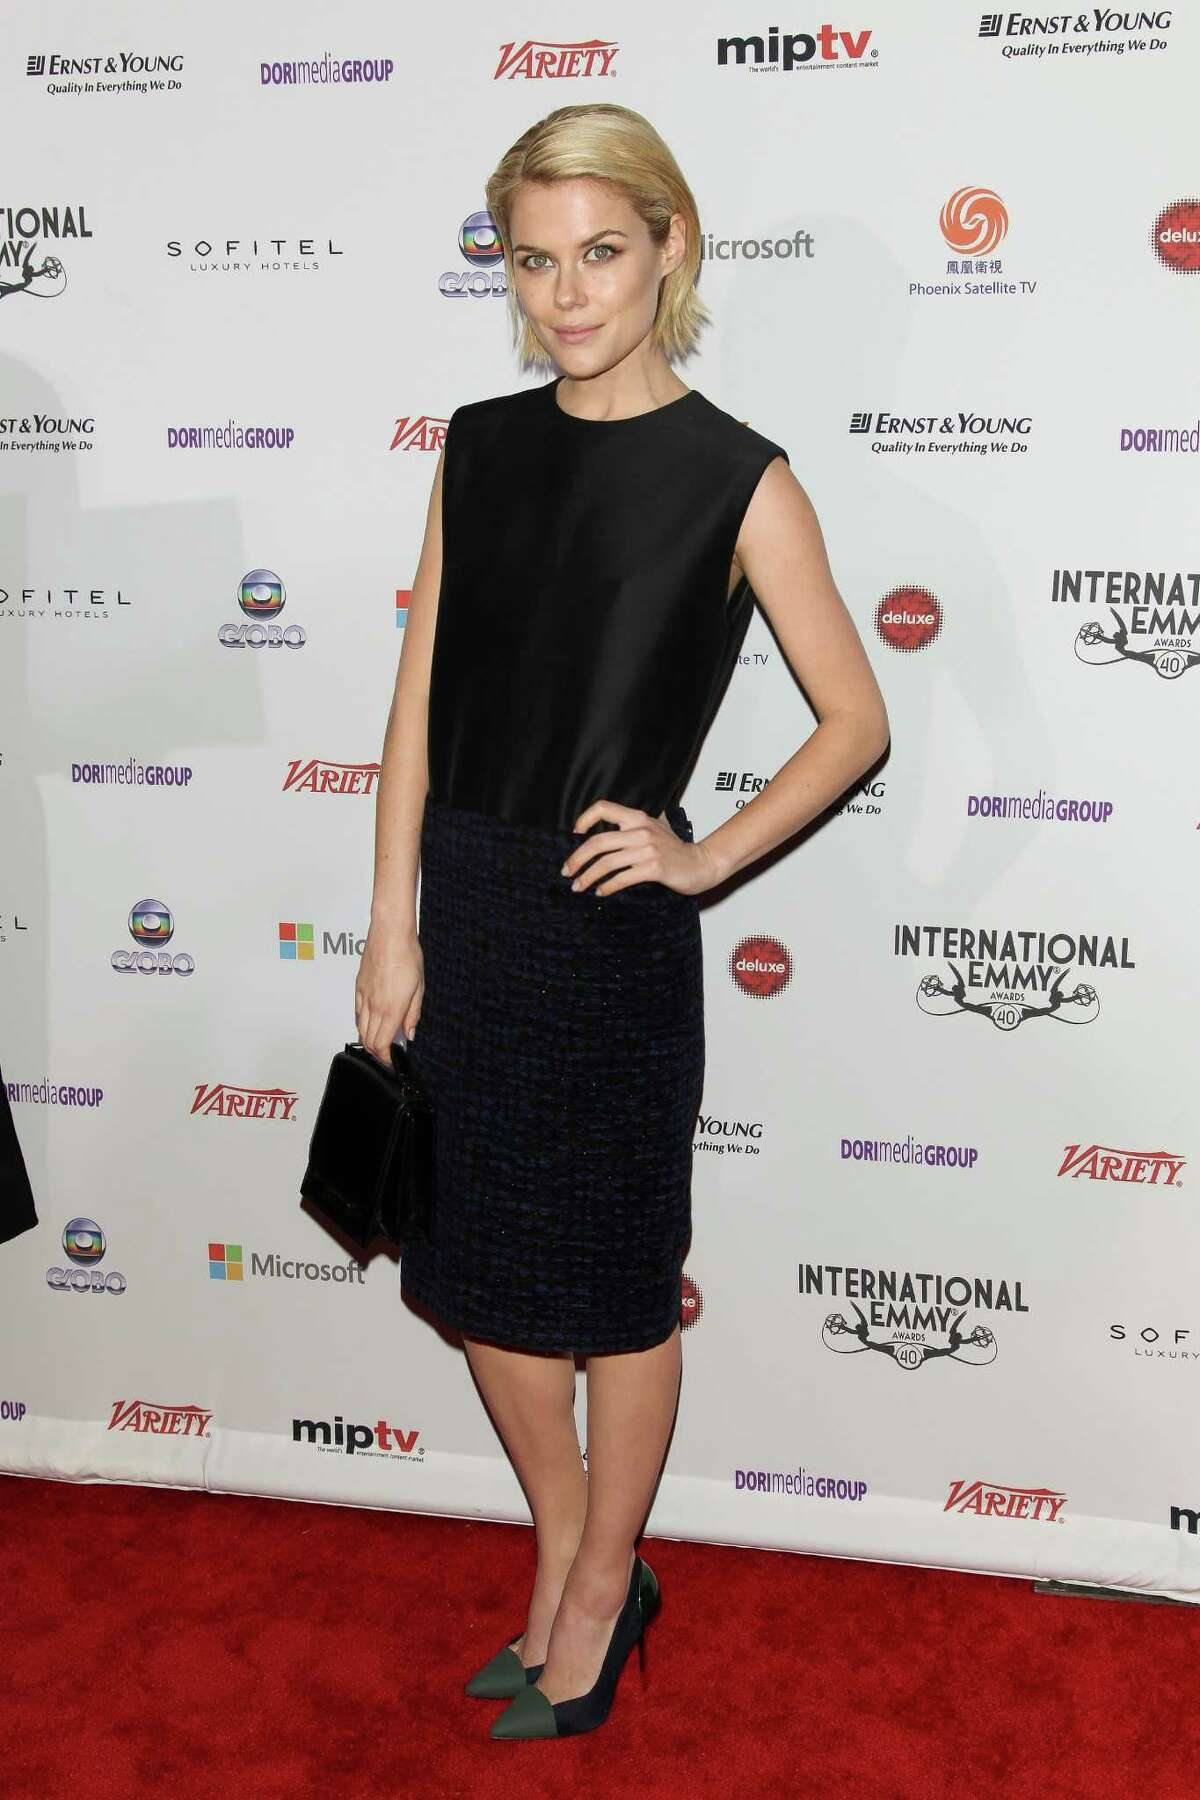 This Nov. 19, 2012 photo released by Starpix shows Australian actress Rachael Taylor at the 40th International Emmy Awards in New York.